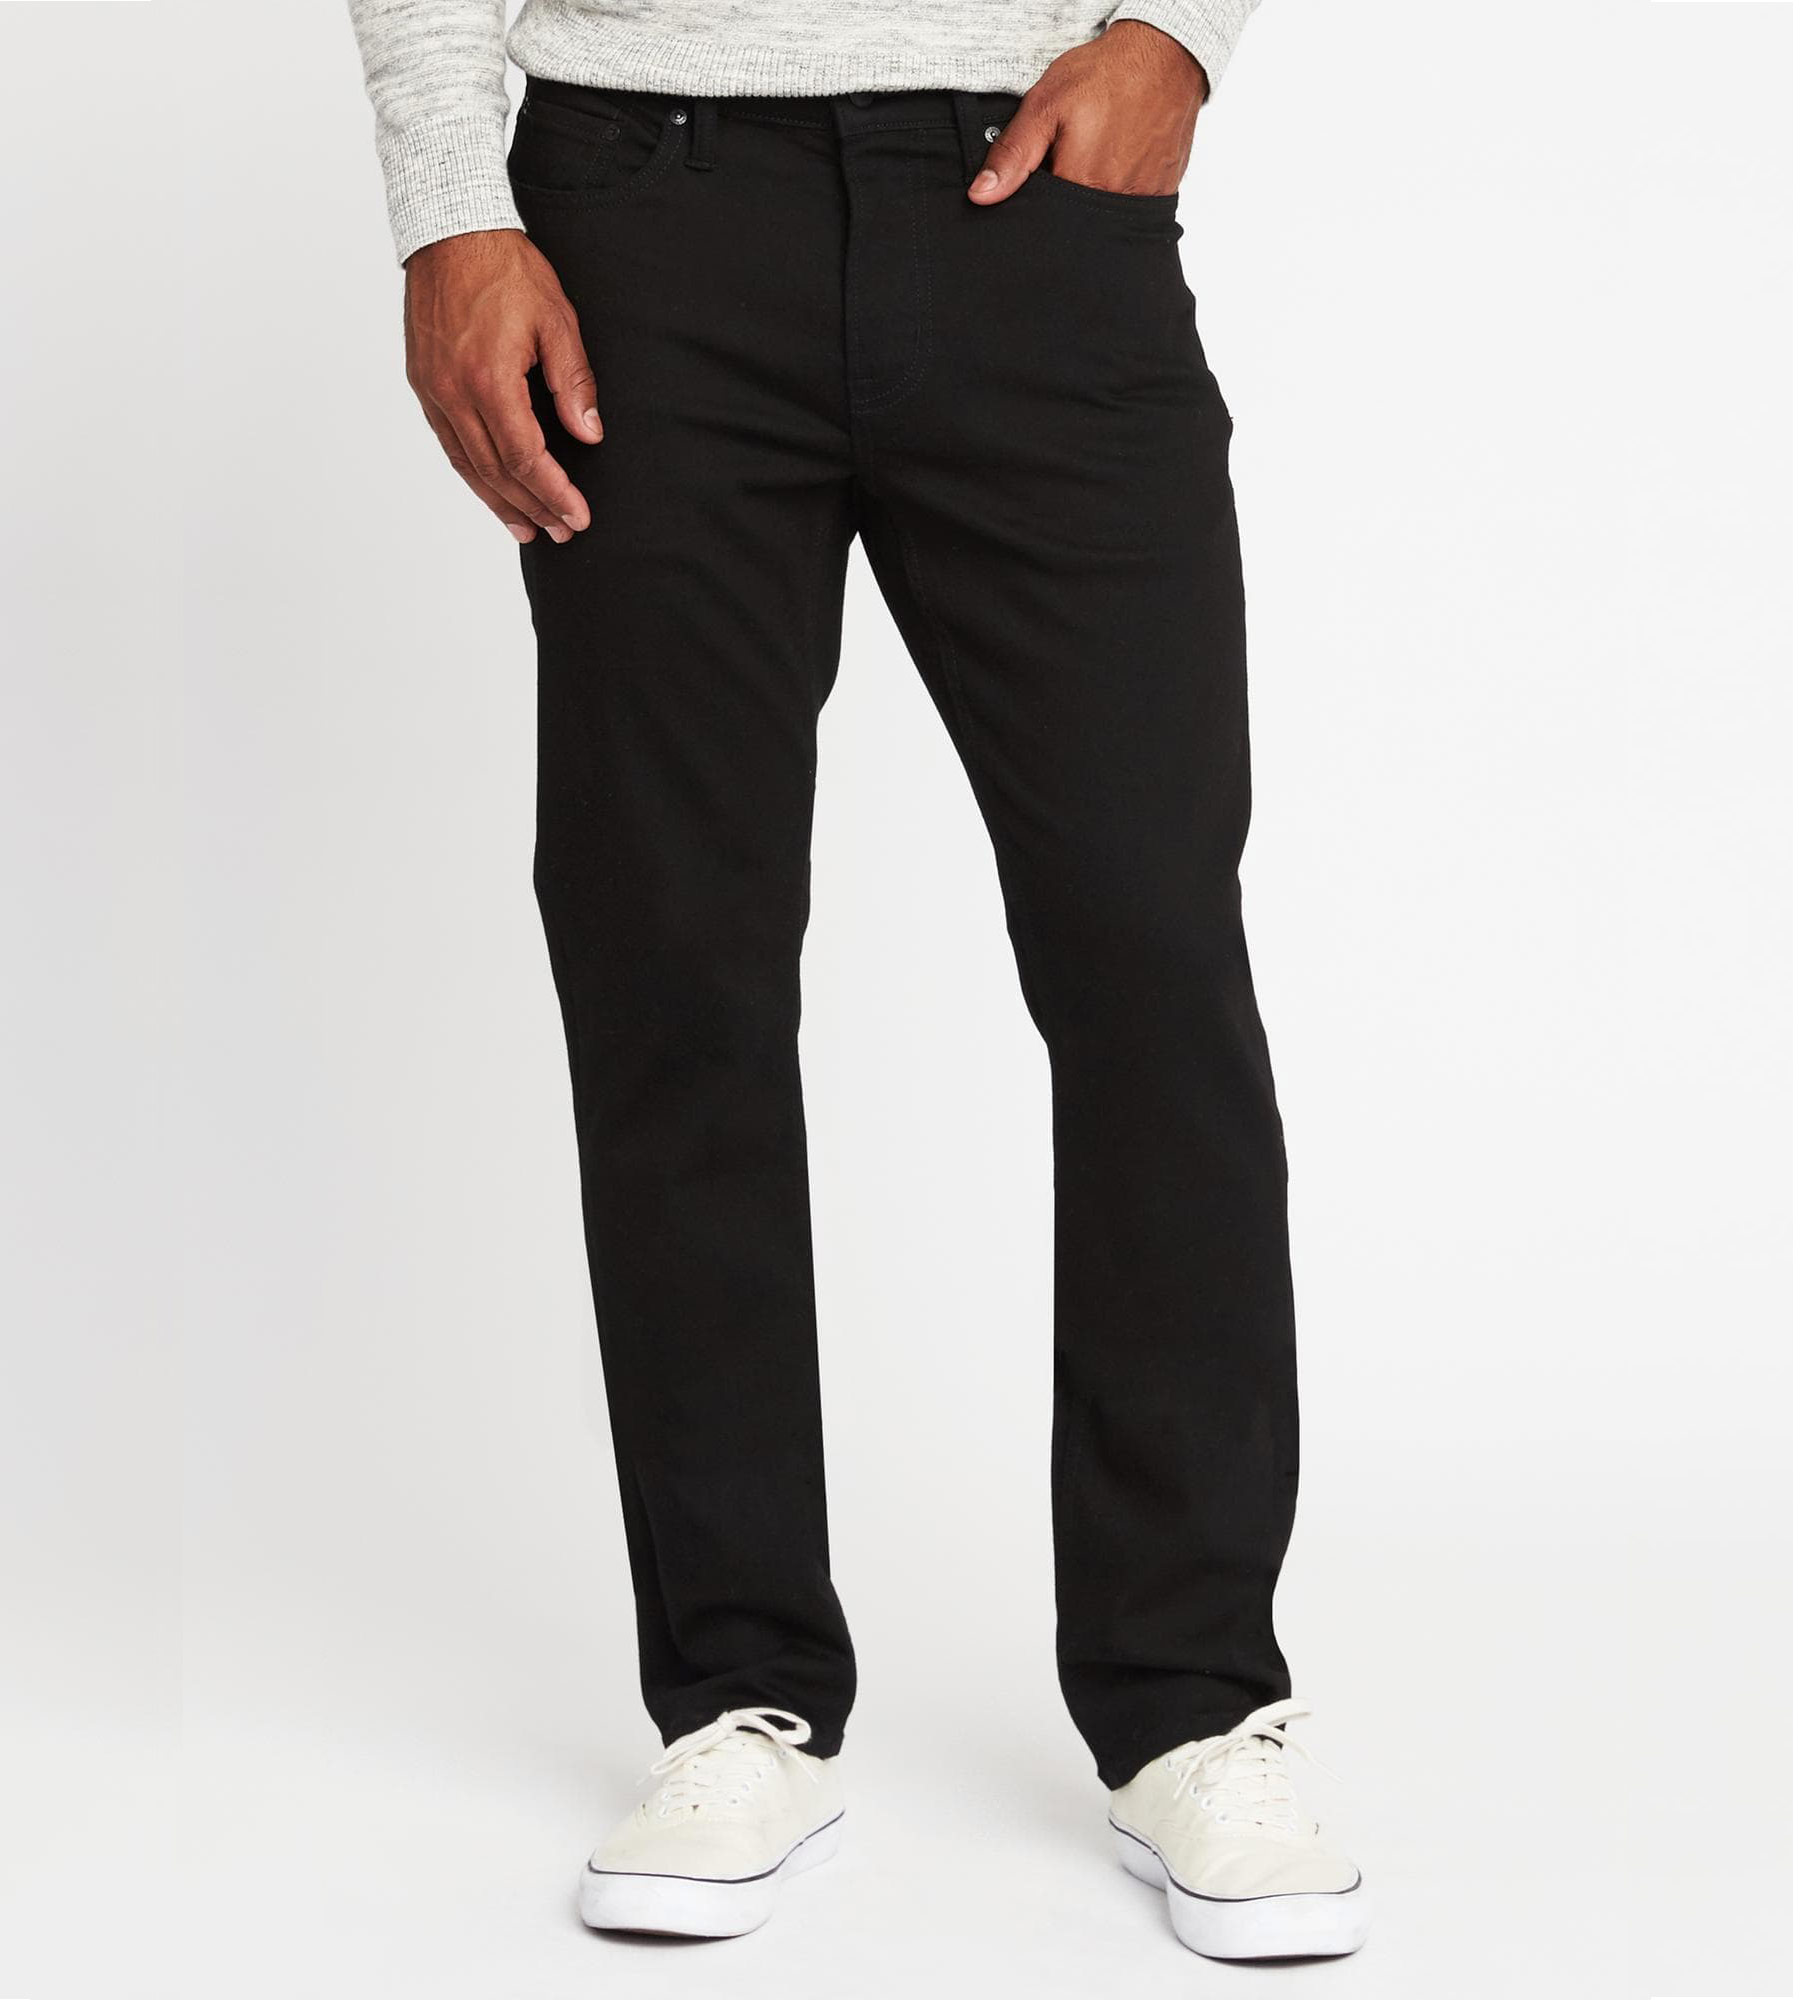 Straight Built-In Flex Max Never Fade Jeans for Men